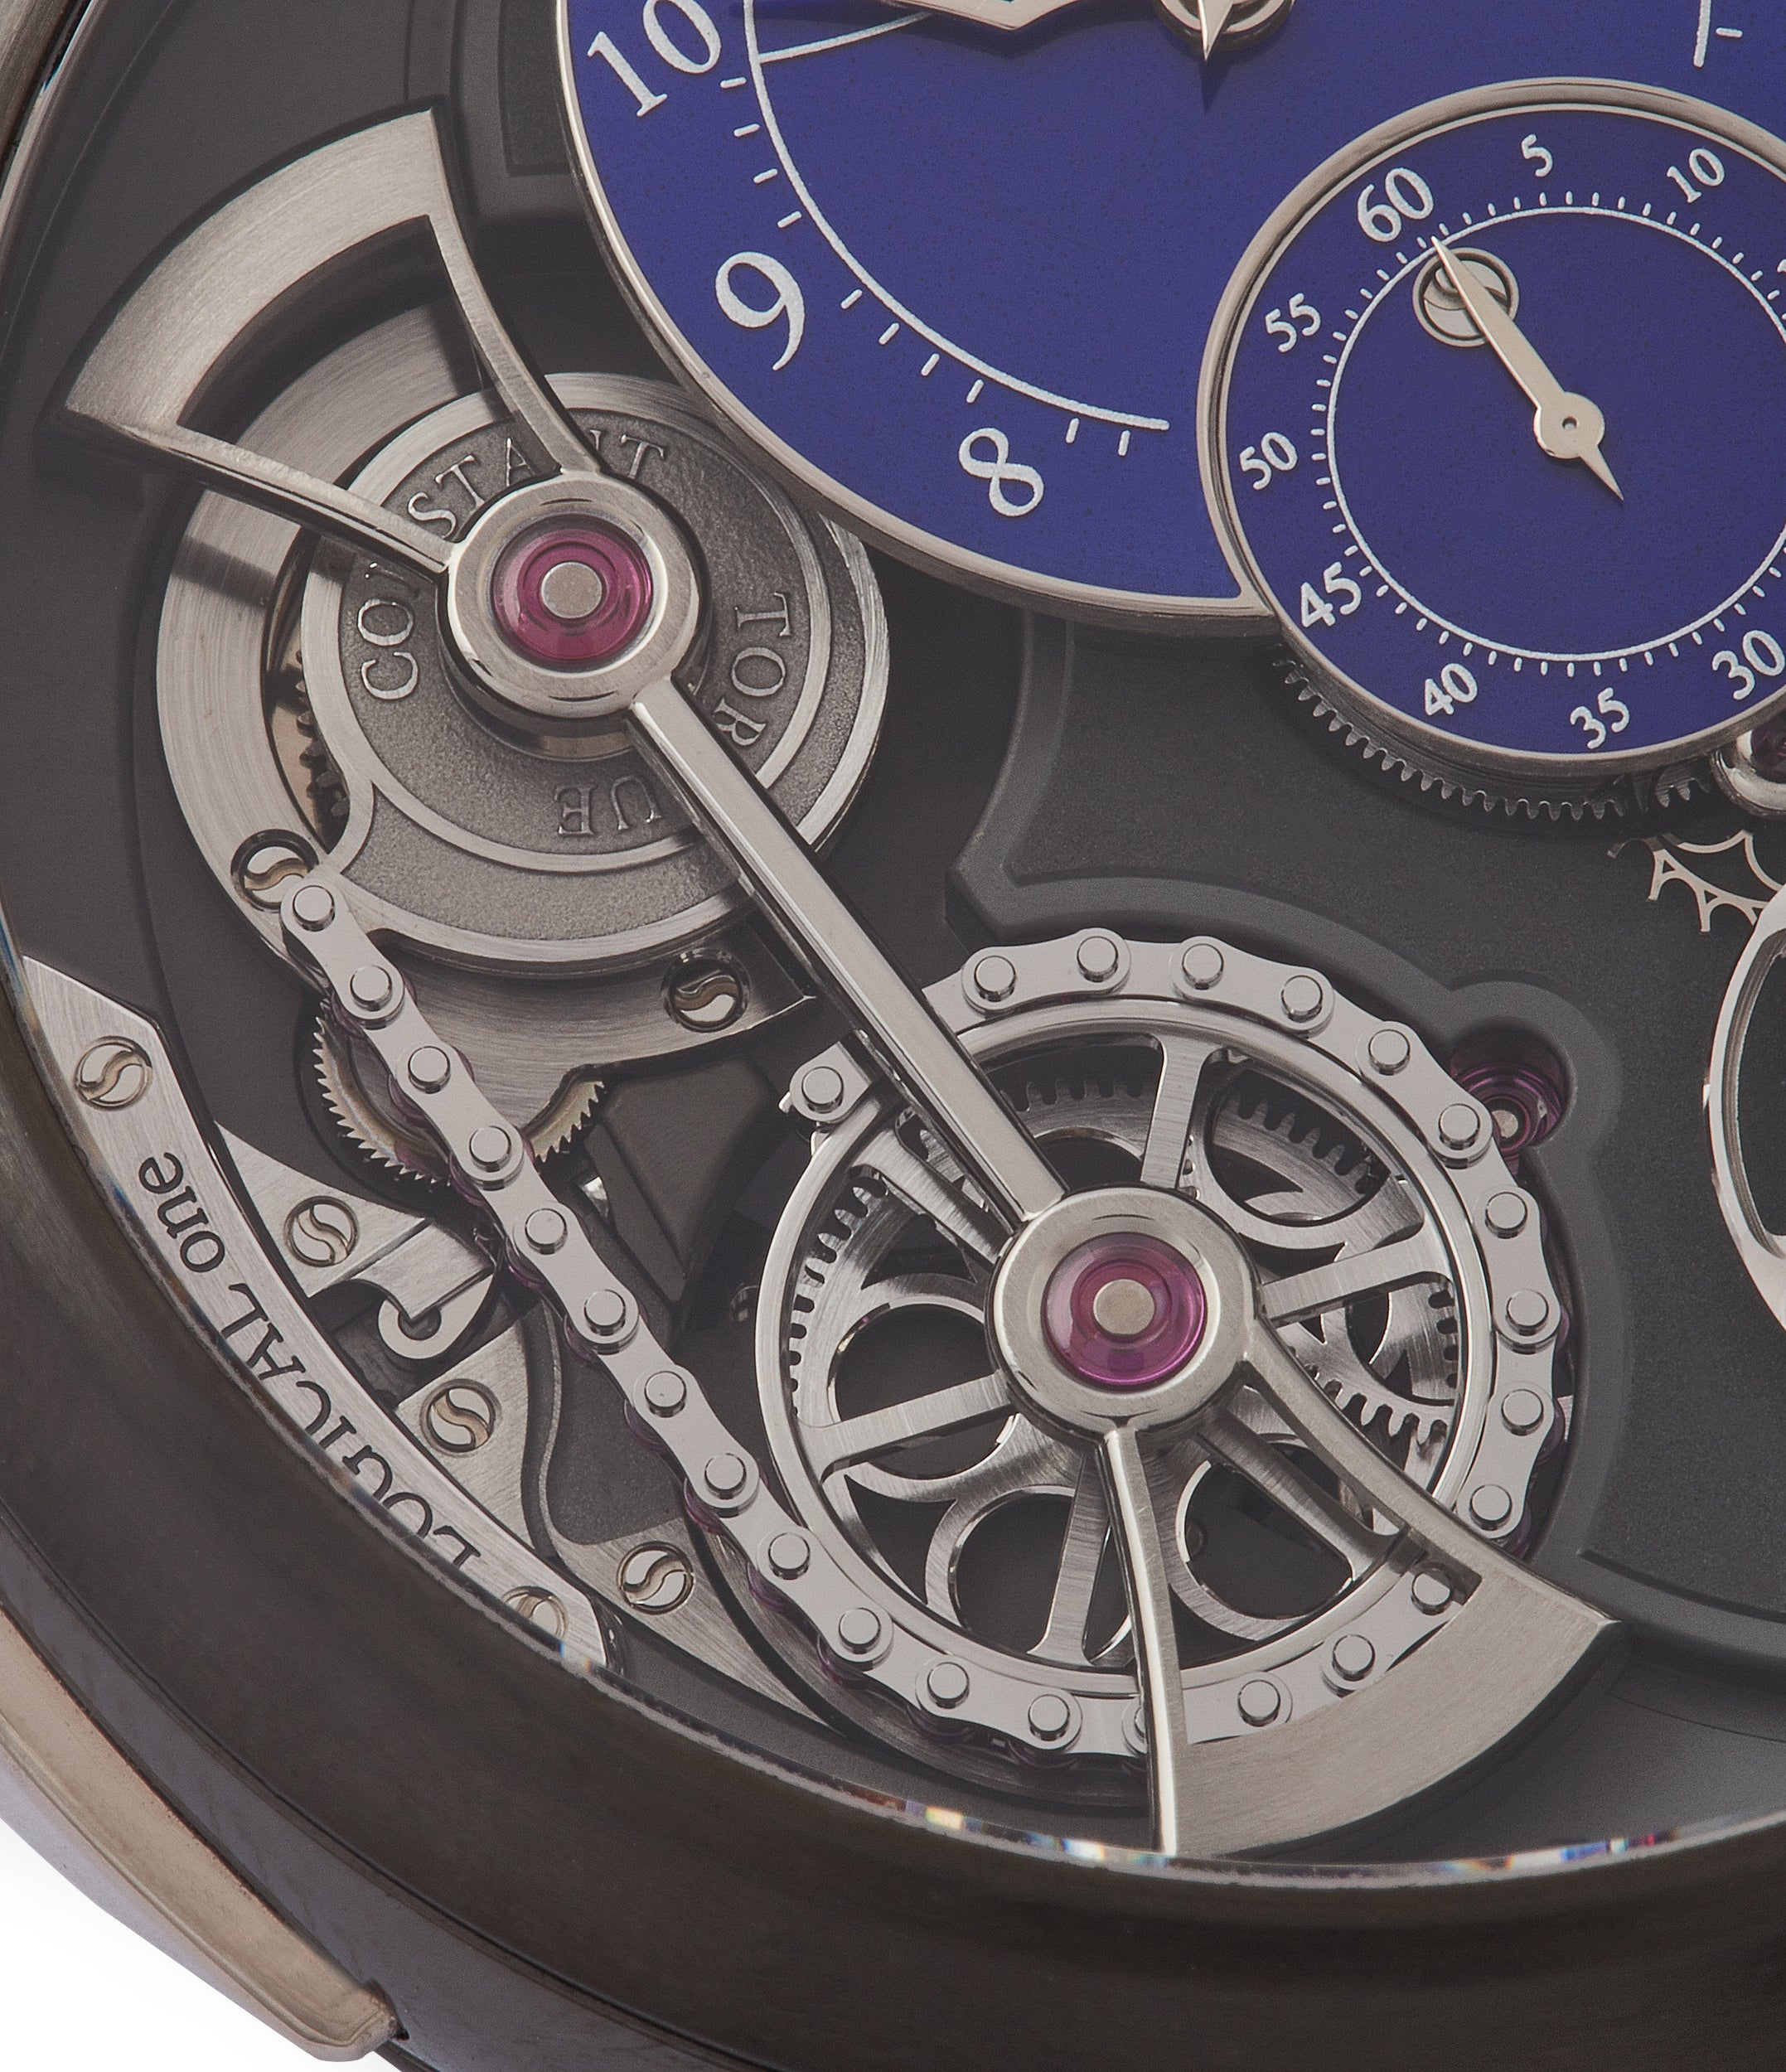 unique watch Romain Gauthier Limited Edition Logical One BTG titanium watch blue enamel dial for sale online at A Collected Man London UK specialist of independent watchmakers